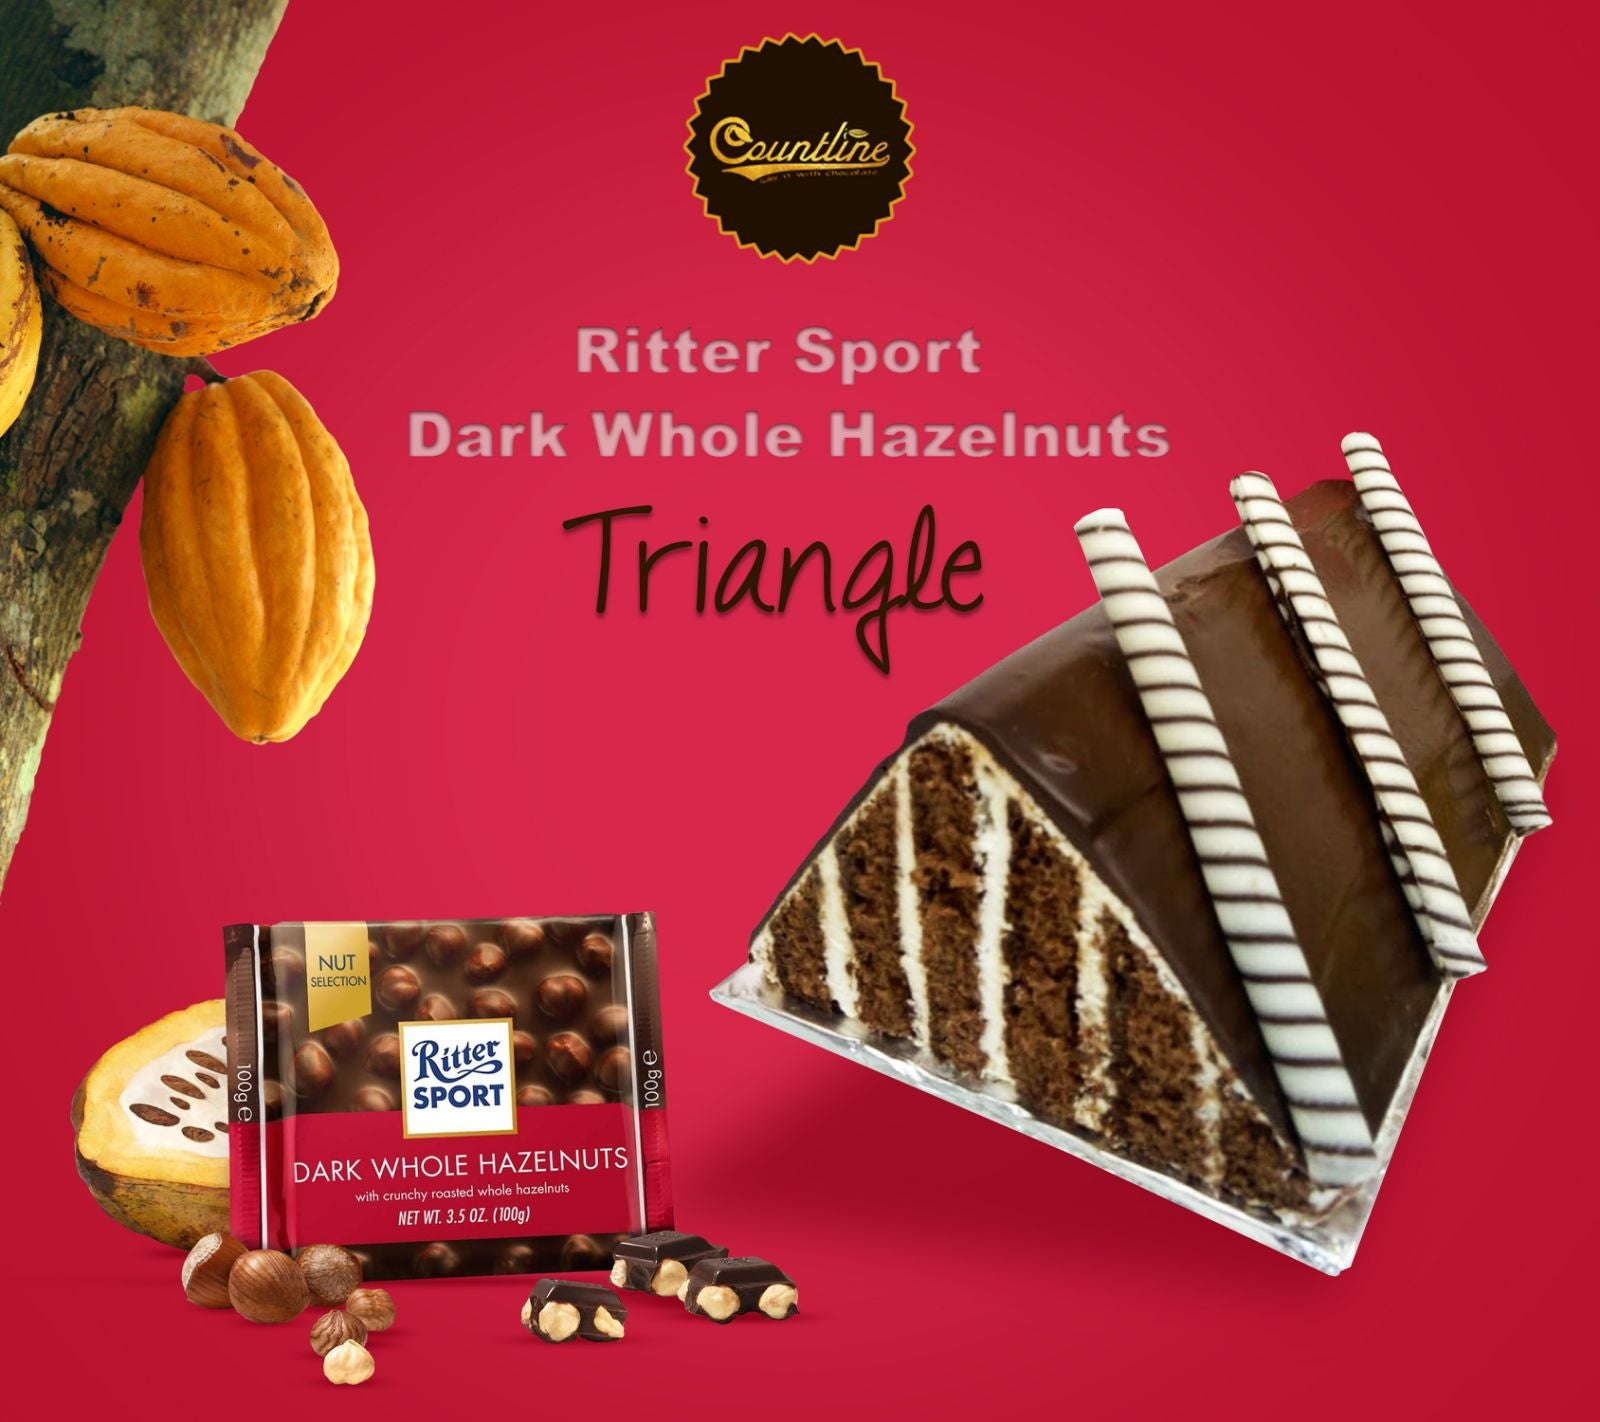 Ritter Sport Dark Whole Hazelnut Triangle